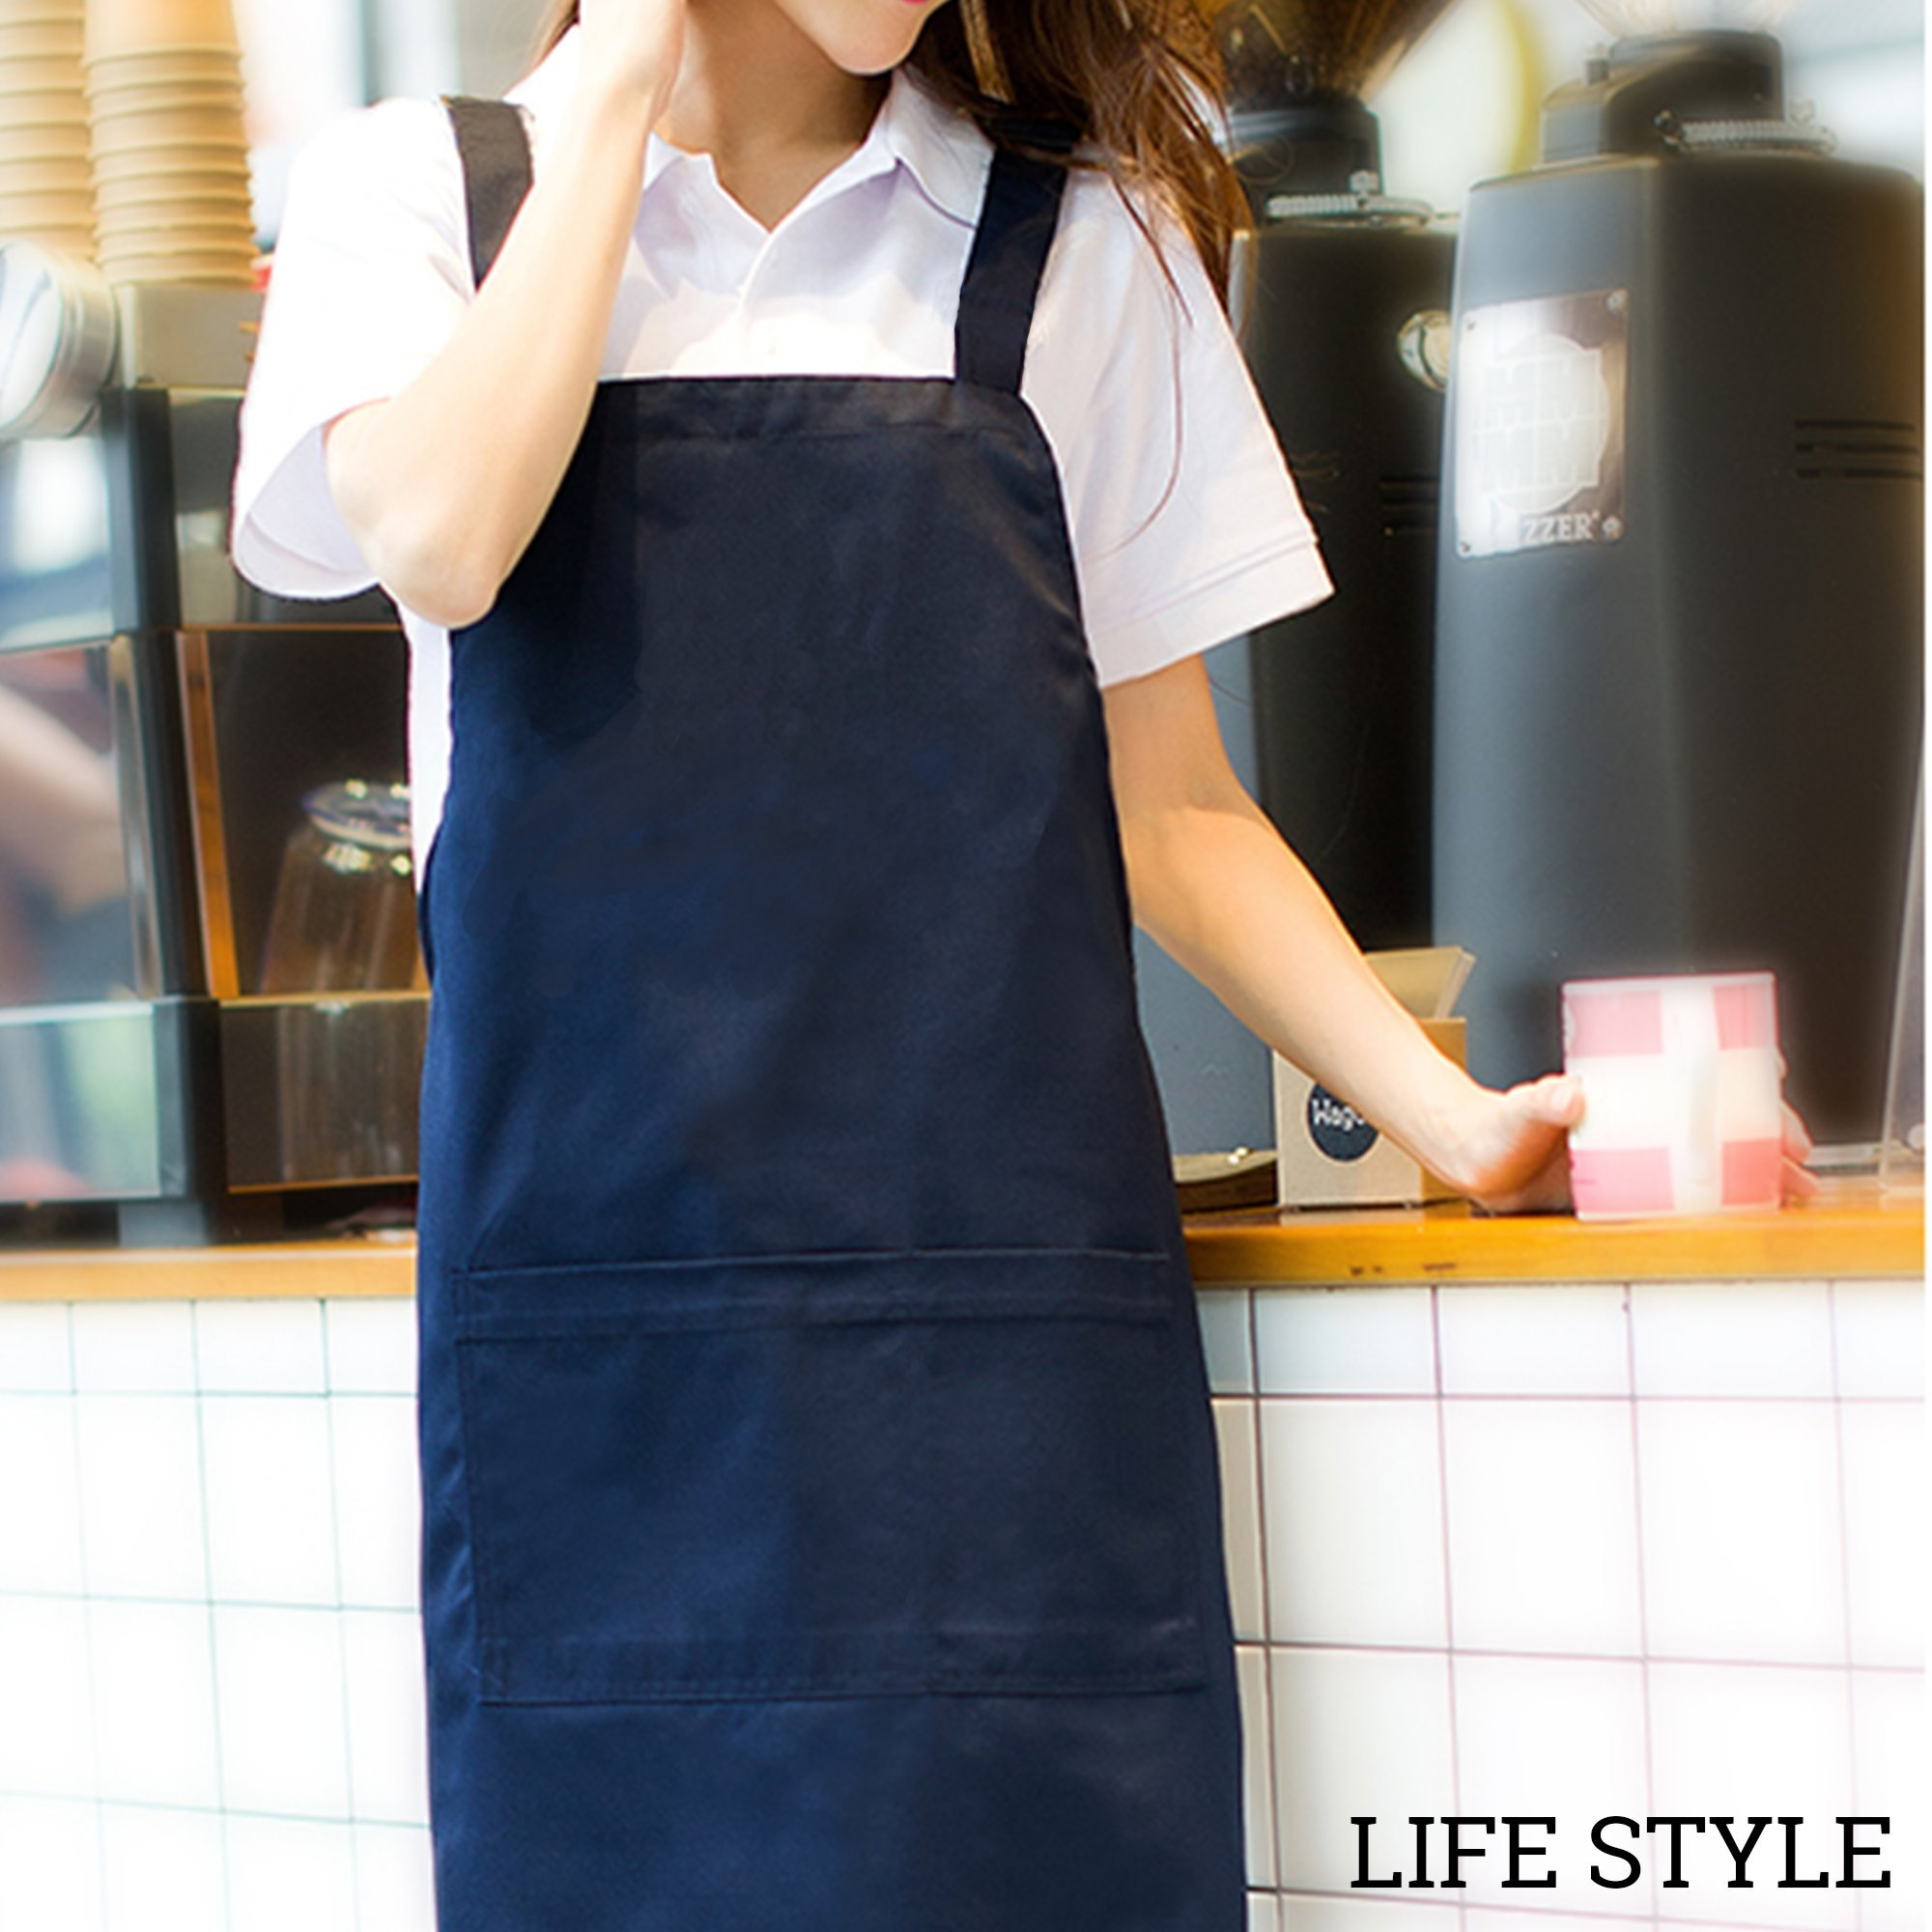 Black Anchor Flower Gift Women Waterproof Aprons For Cooking Apron With Pockets by CVV Apron (Image #3)